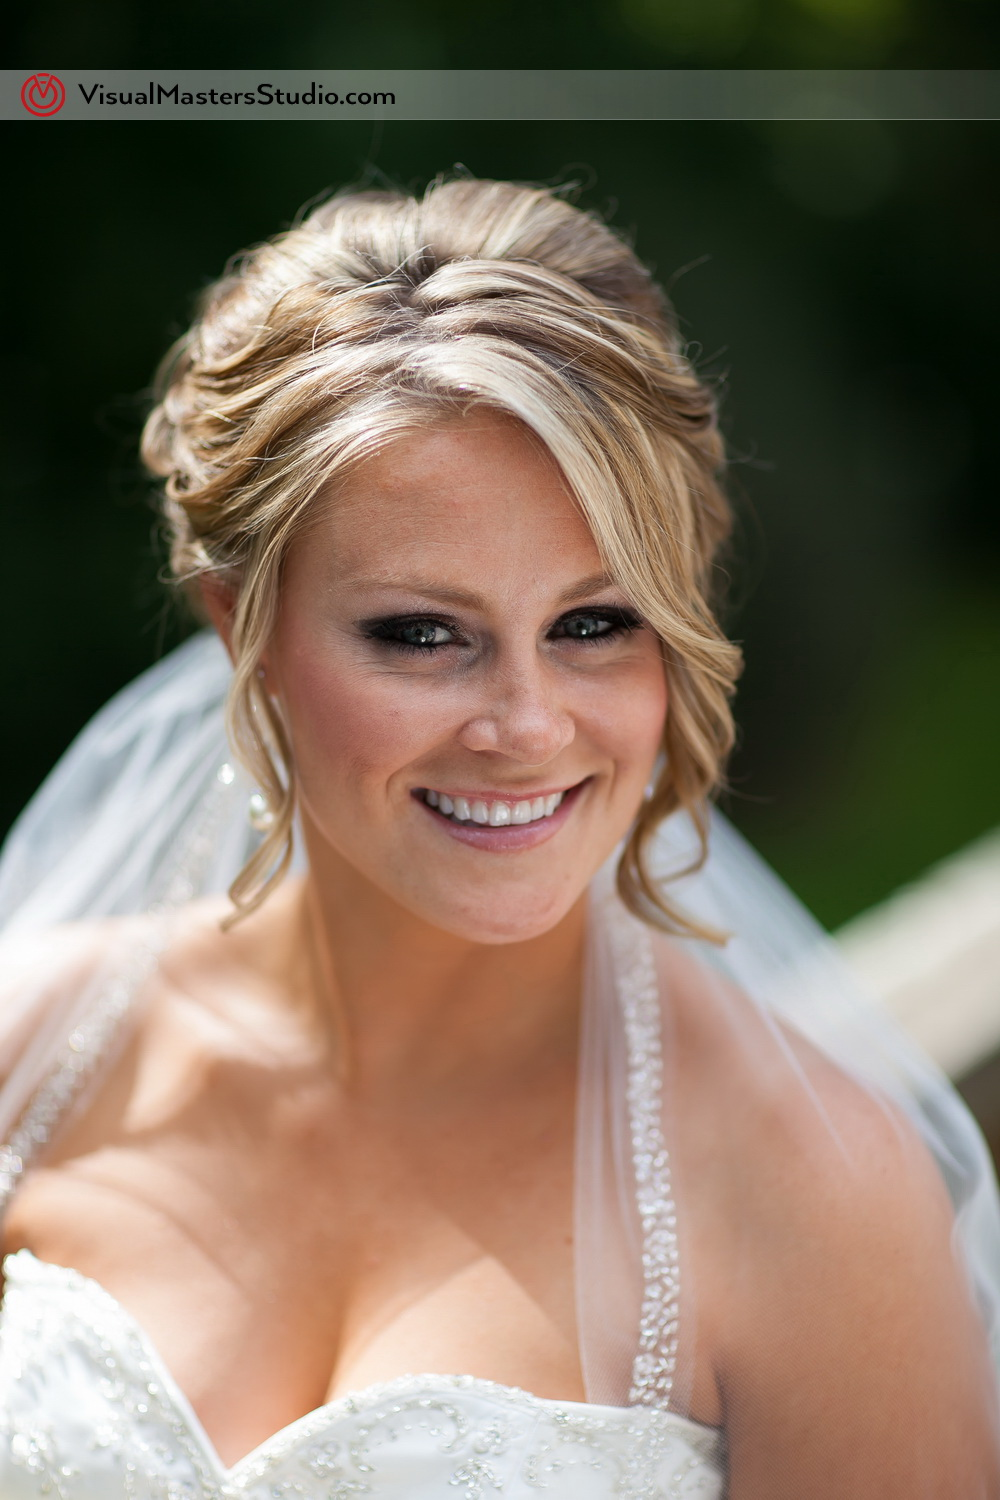 Beautiful Bride by Visual Masters